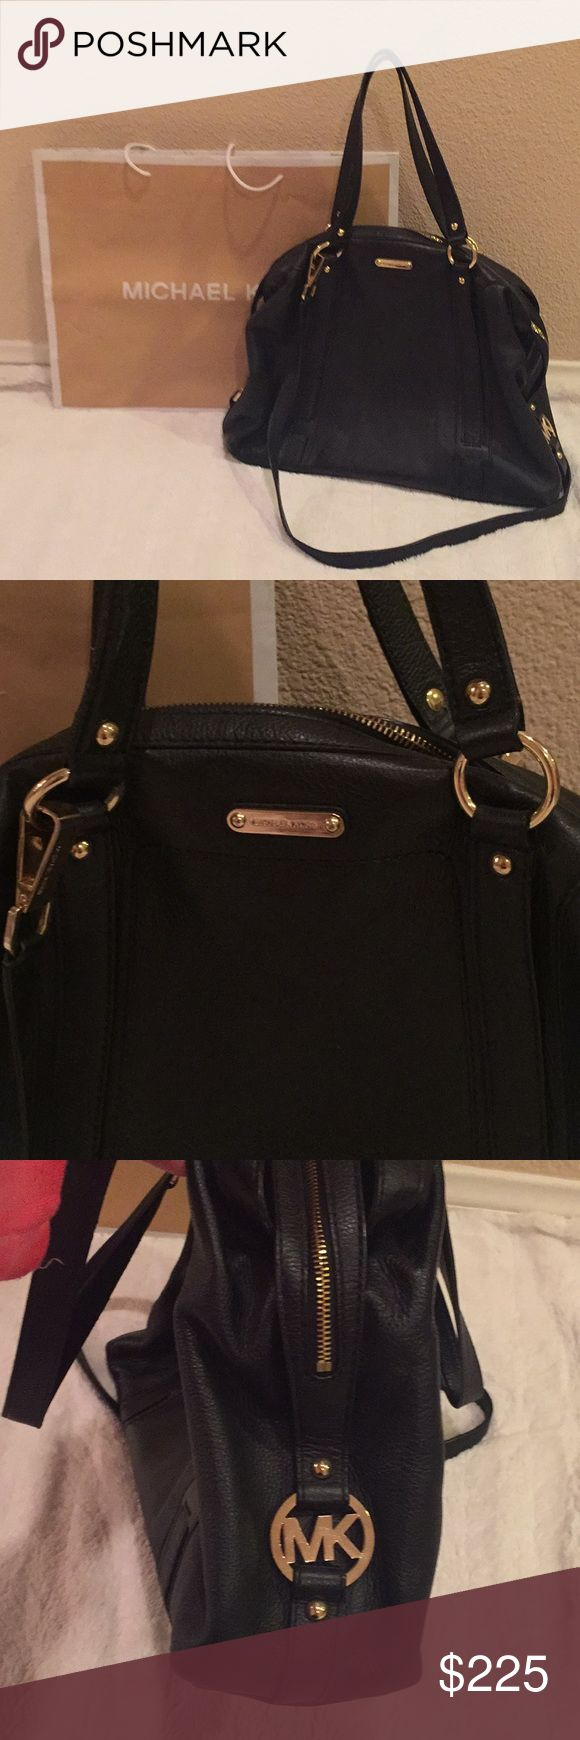 💯Authentic Extra Large Leather Michael Kors Bag🌟 Authentic beautiful extra large leather Michael Kors Bag in mint condition! No signs of wear this is a gorgeous bag with plenty of storage it measures 16 inches wide and 12 inches deep, has removable strap, comes Michael Kors shopping bag, thanks for looking 😊 Michael Kors Bags